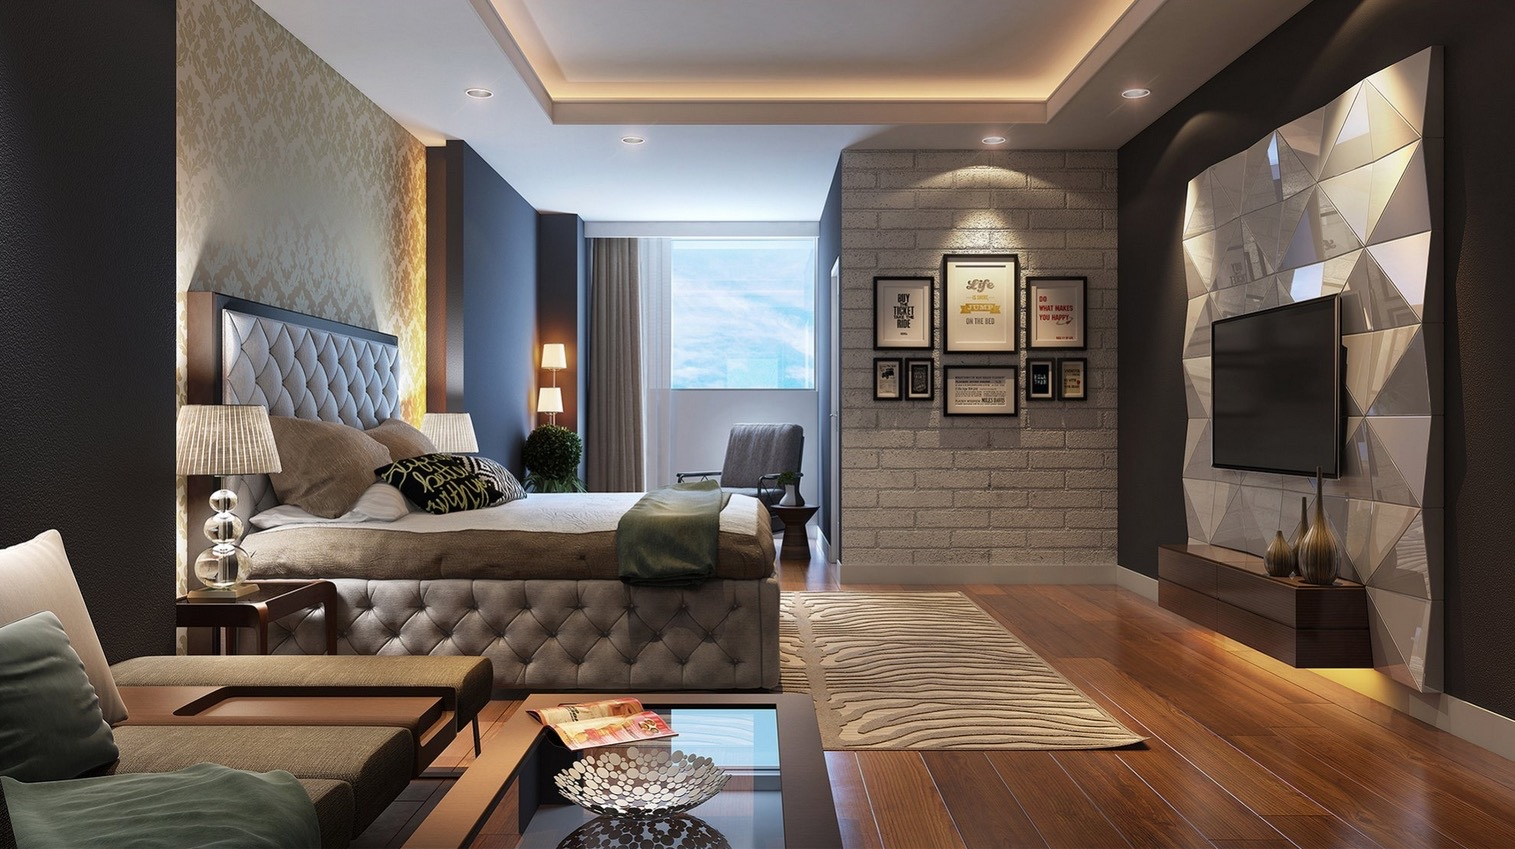 21 cool bedrooms for clean and simple design inspiration HWQHRVX